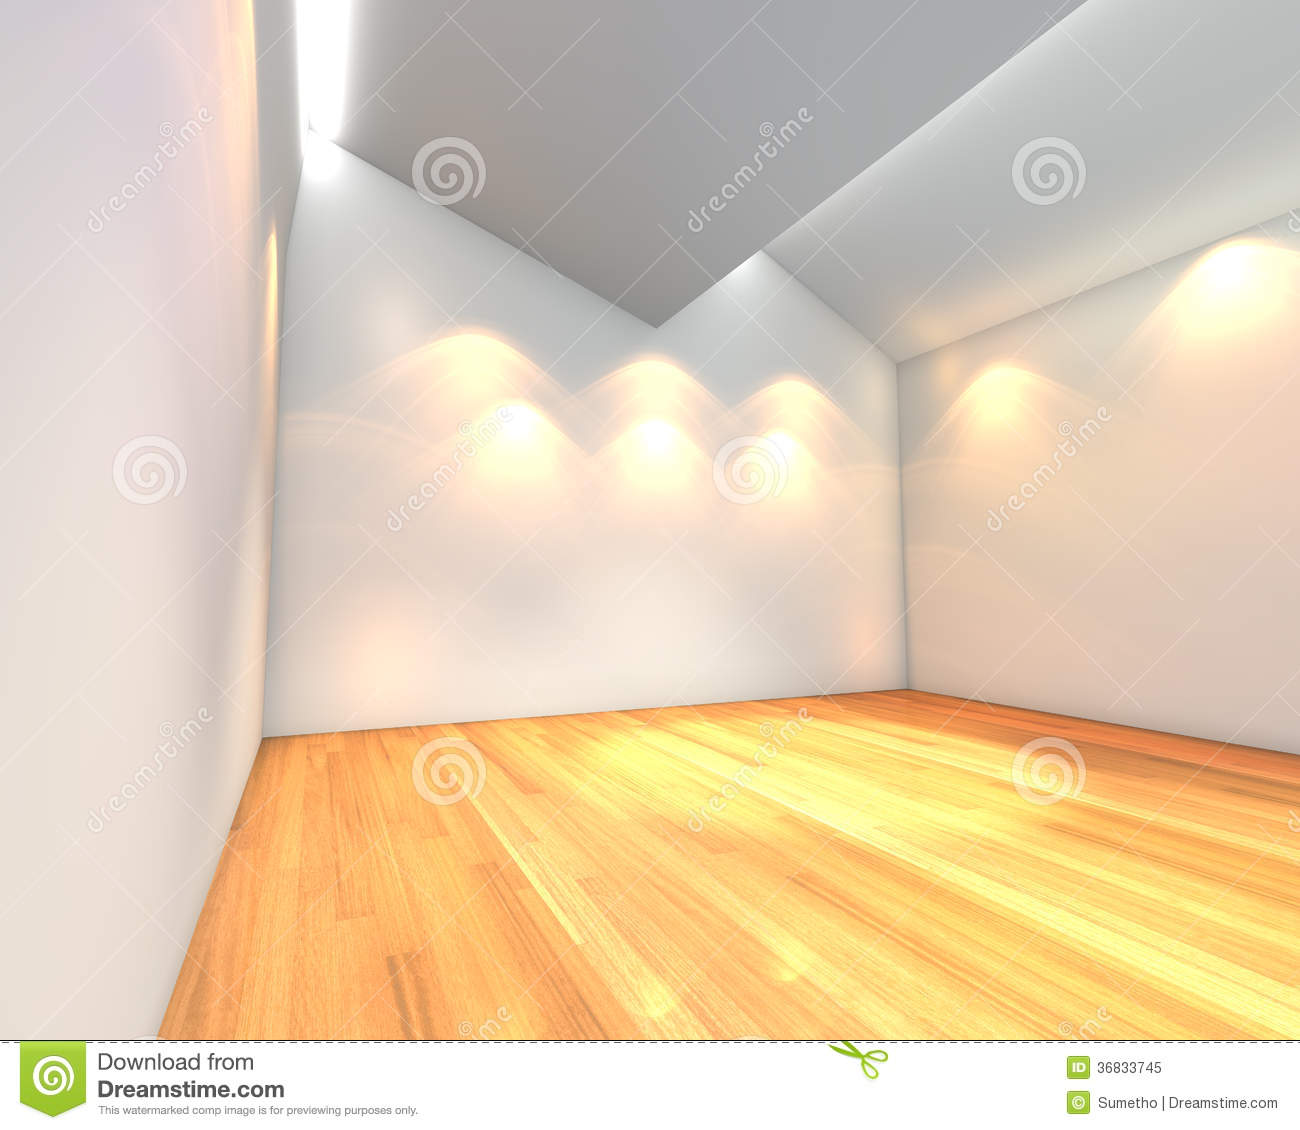 Empty Room White Wall With Ceiling Serration Stock Illustration ...